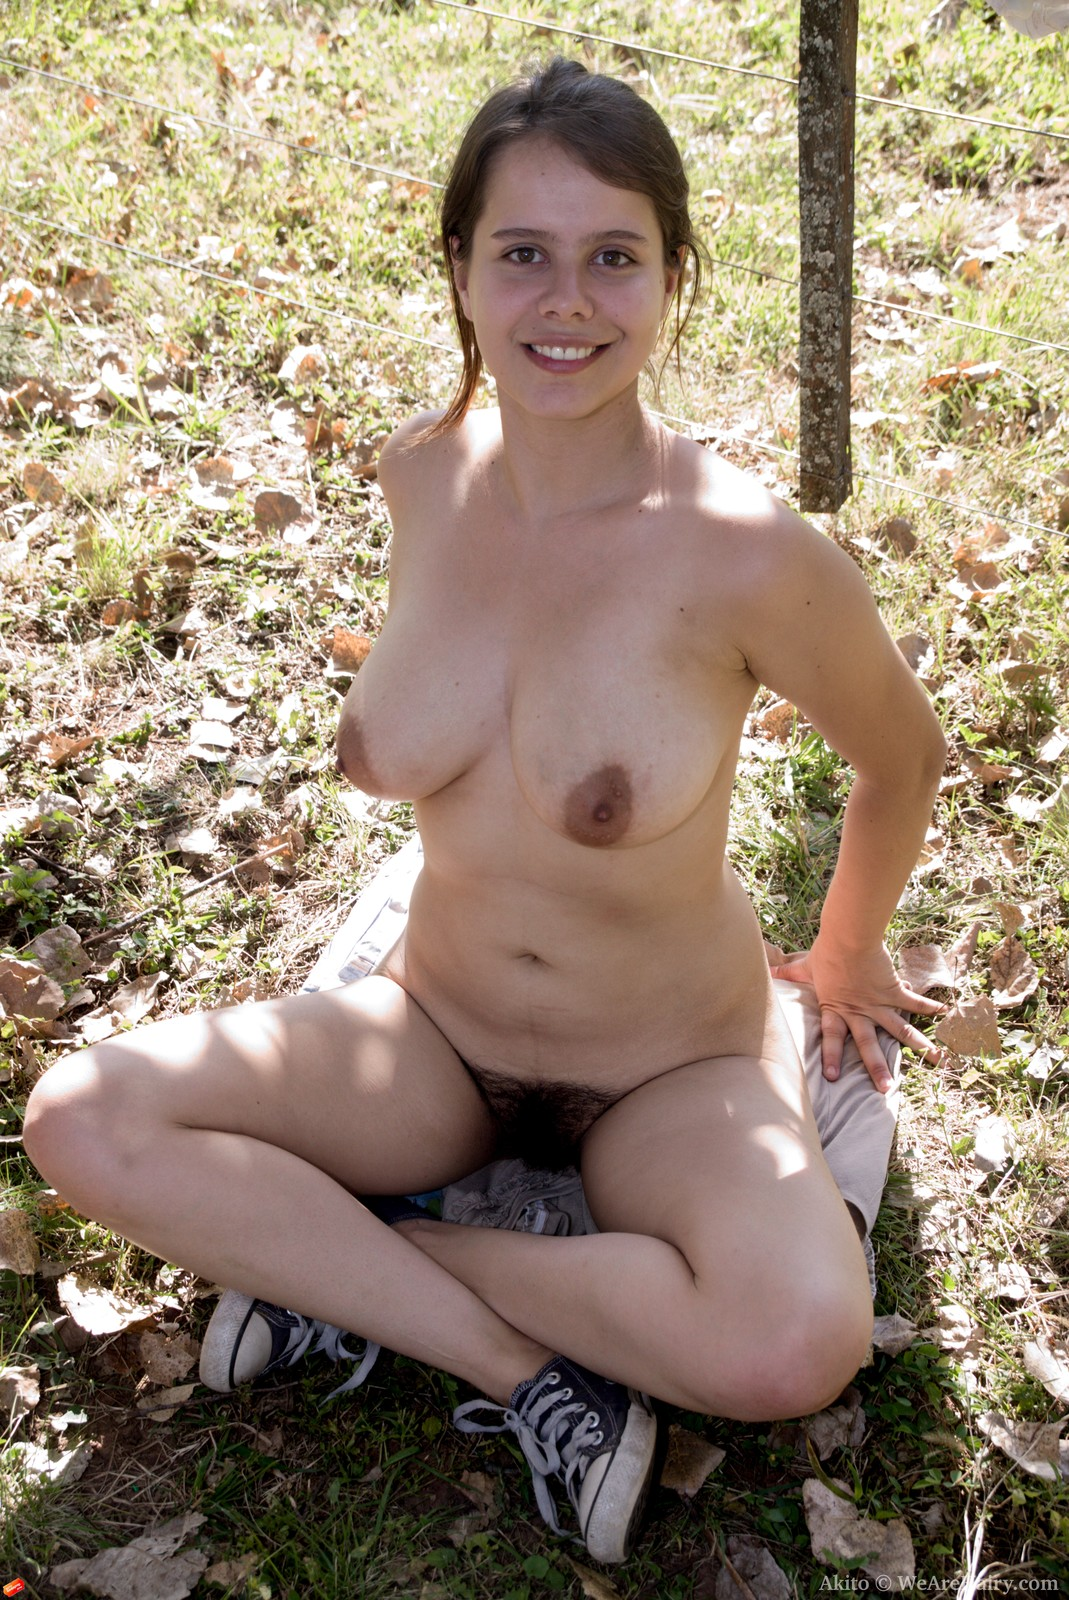 Sexy nude women garden think